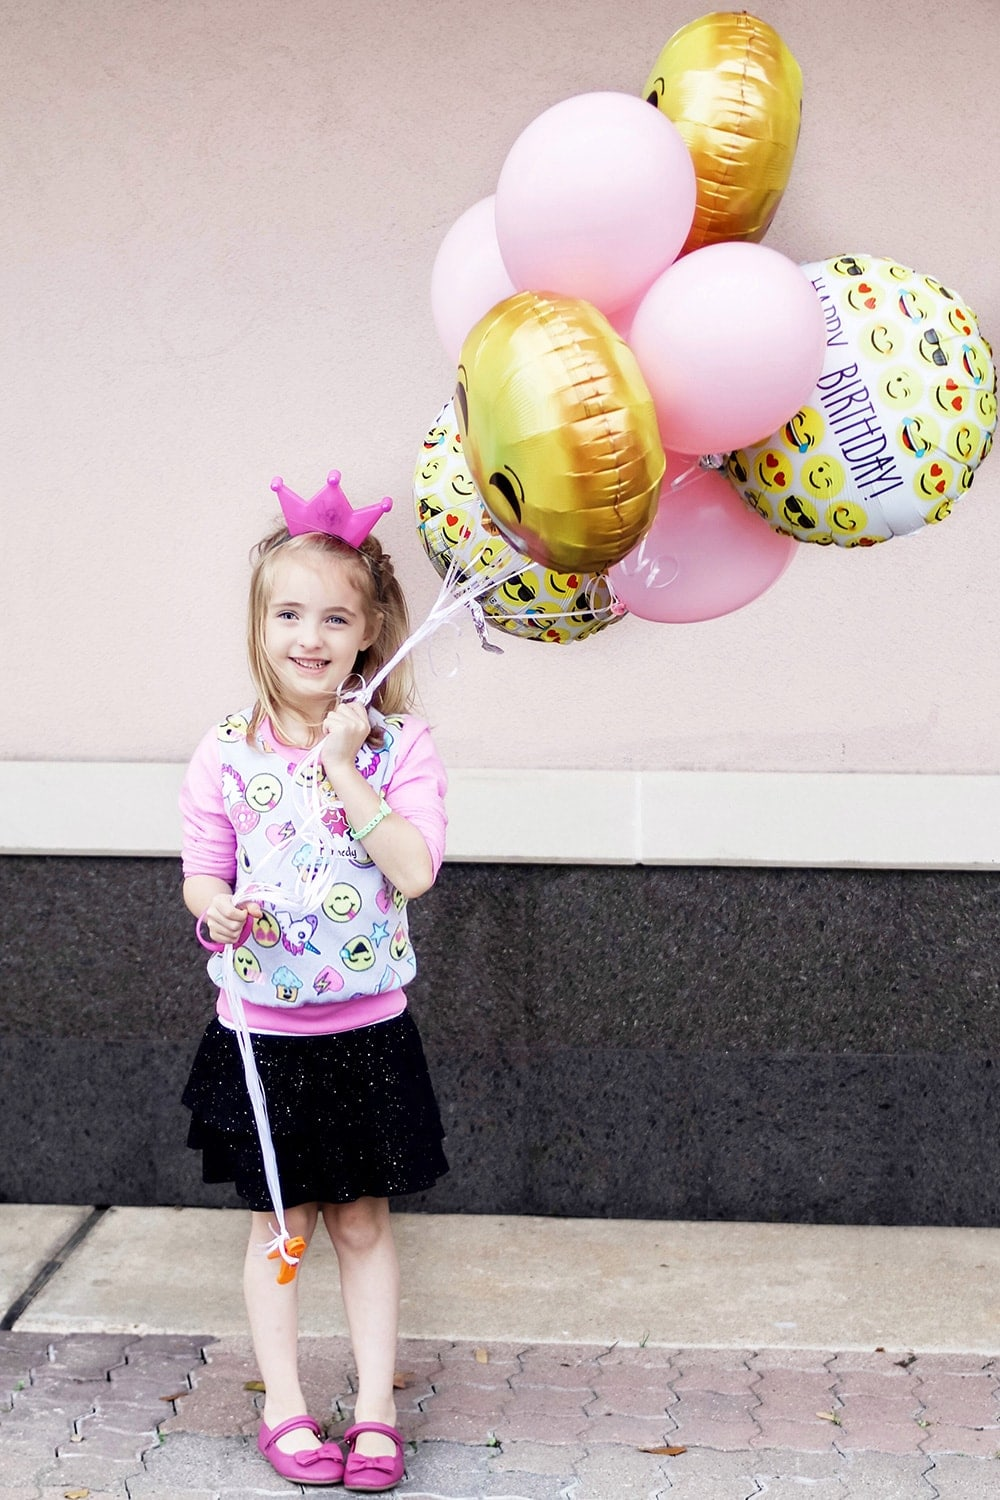 birthday girl holding pink and emoji balloons